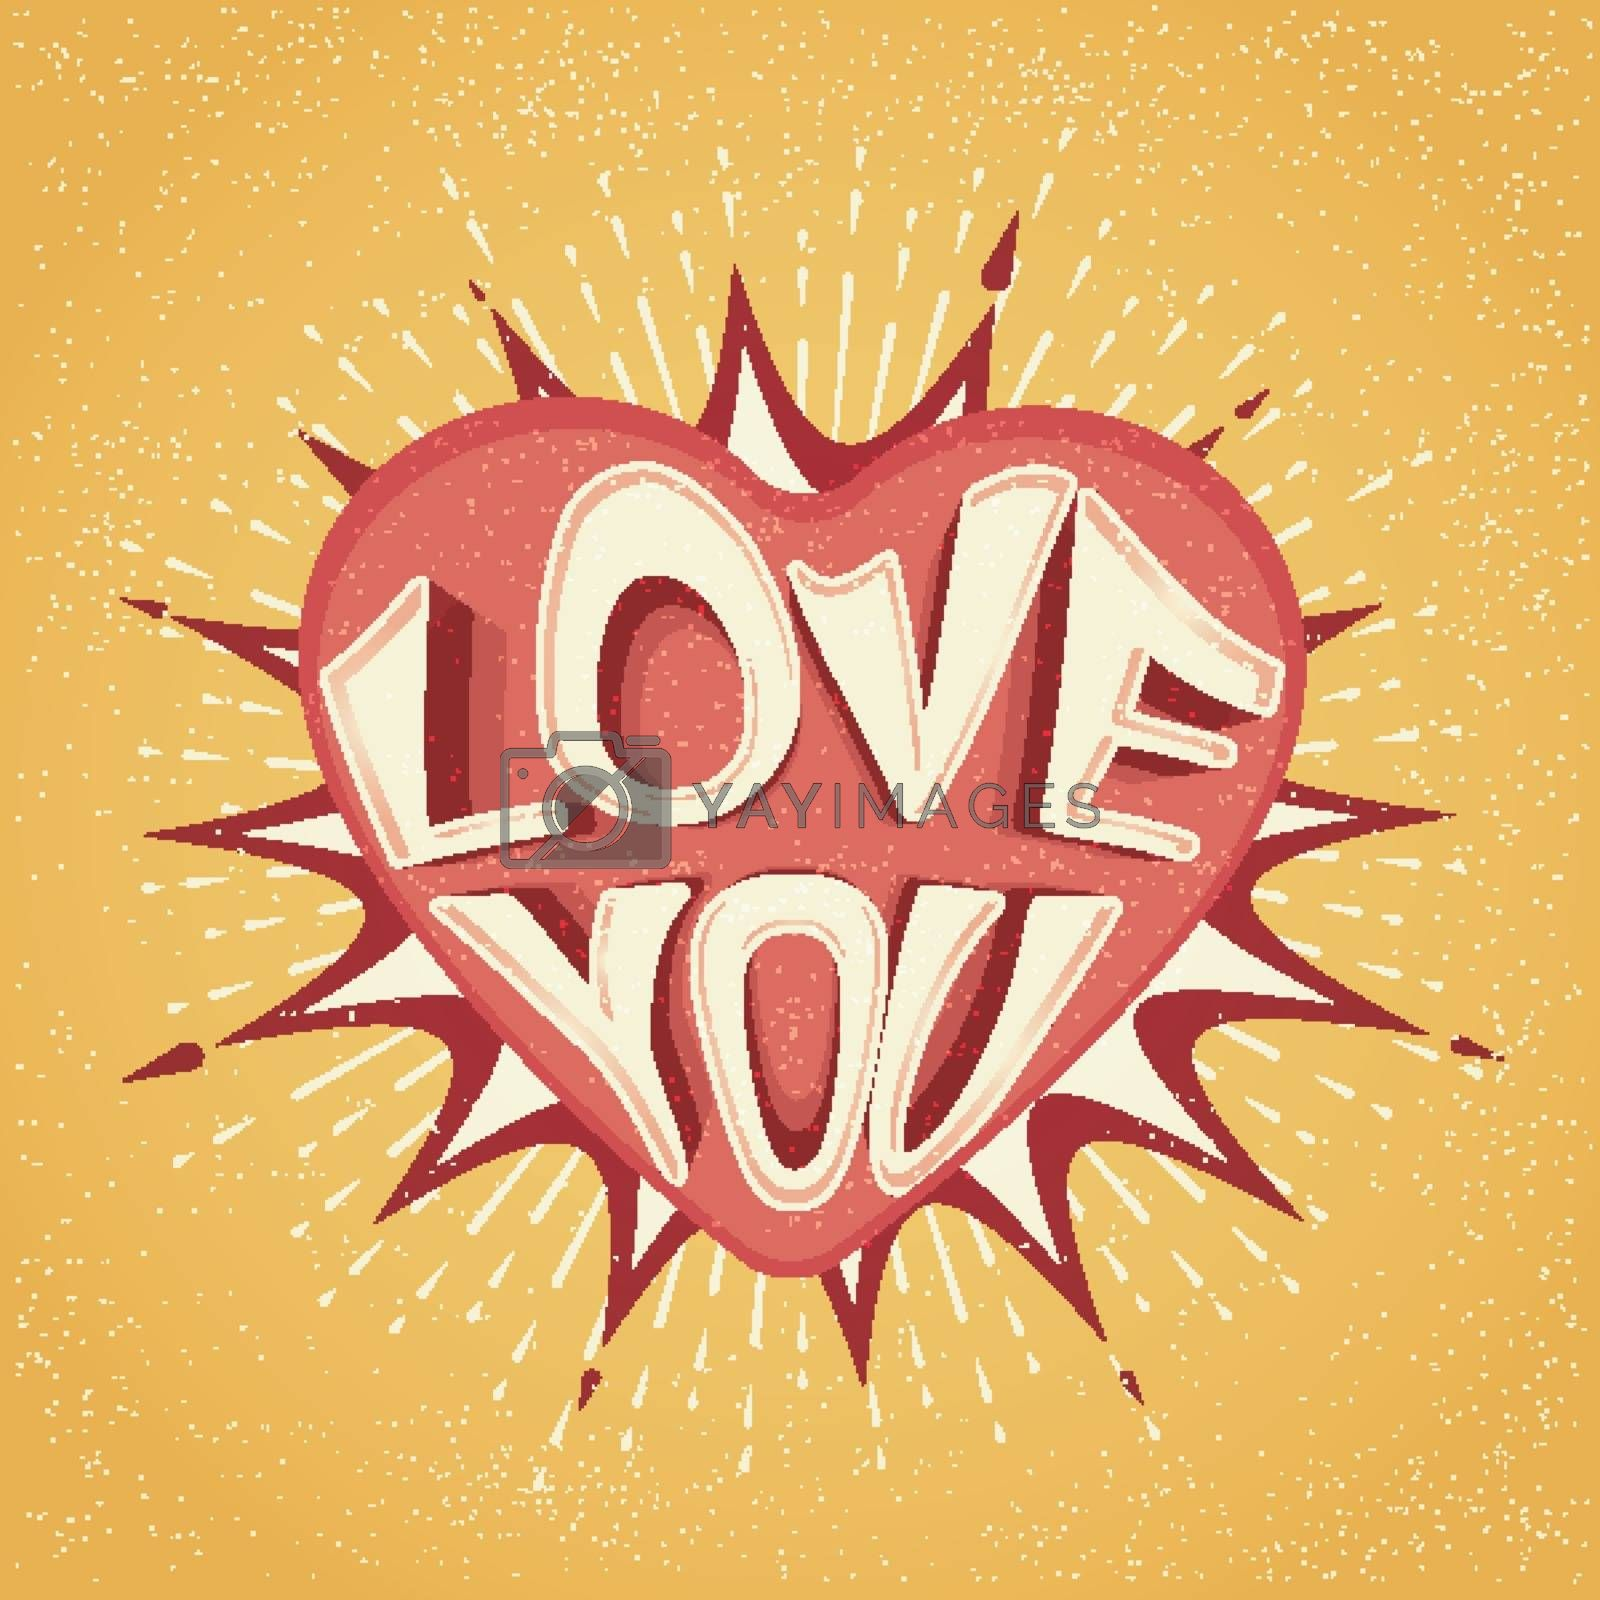 Vintage style Text Love You on Heart coming out from pop art explosion for Happy Valentine's Day Celebration.